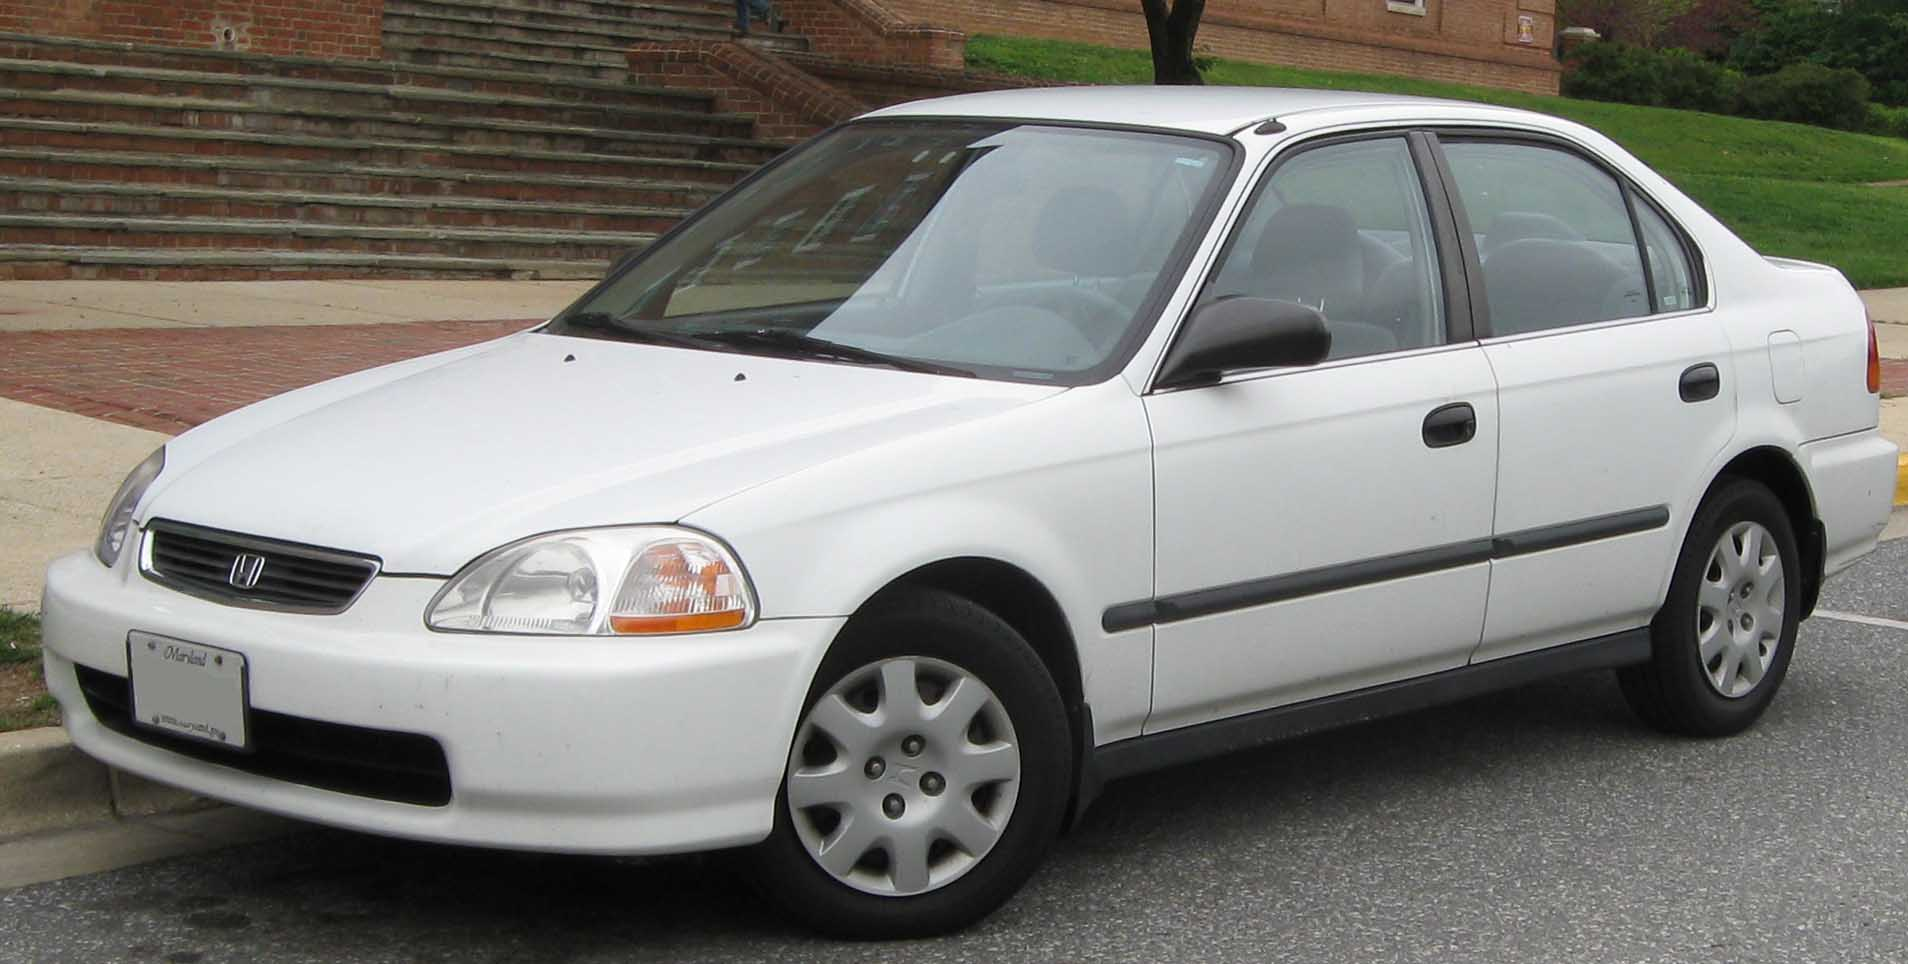 File:96-98 Honda Civic LX sedan.jpg